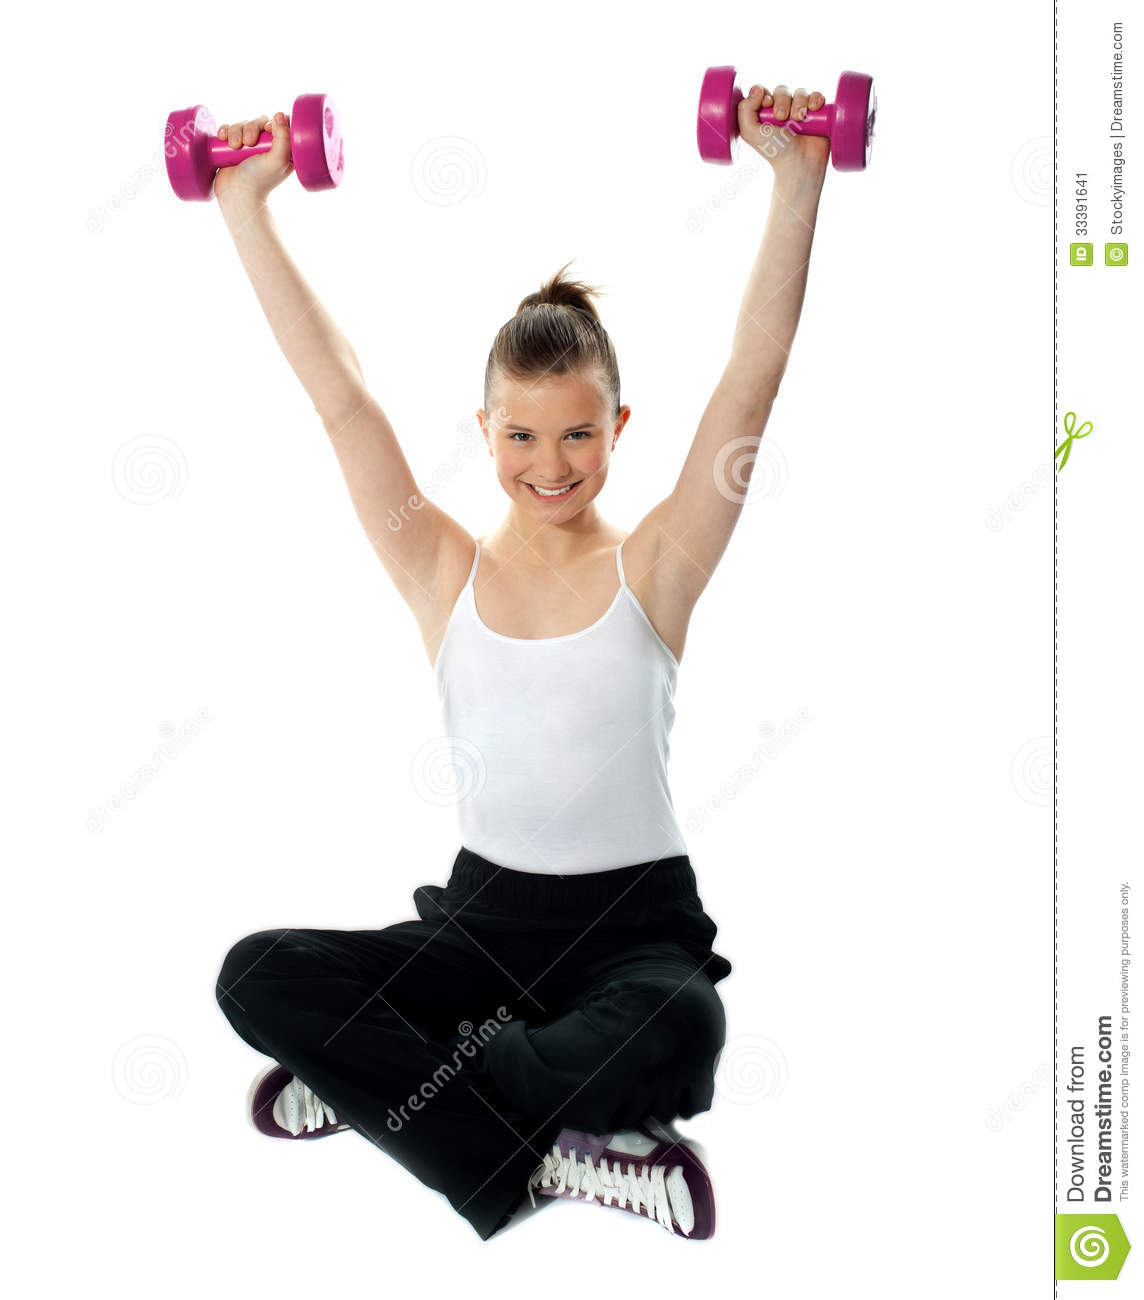 Fit Ladies Who Work Out And Have: Smiling Fit Girl Working Out With Dumbbells Stock Image